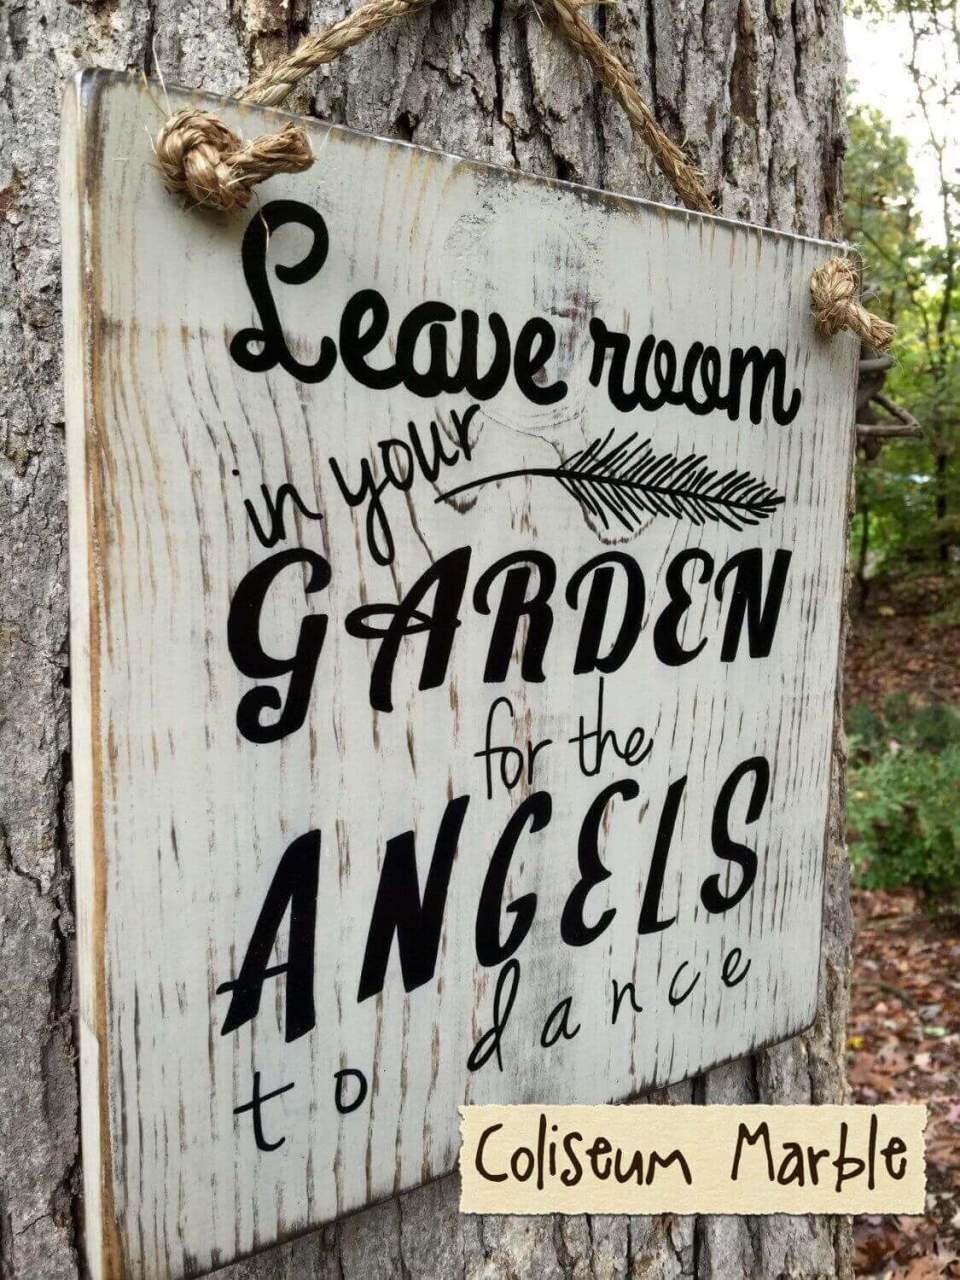 Inspirational Sign with Angelic Grace | Funny DIY Garden Sign Ideas